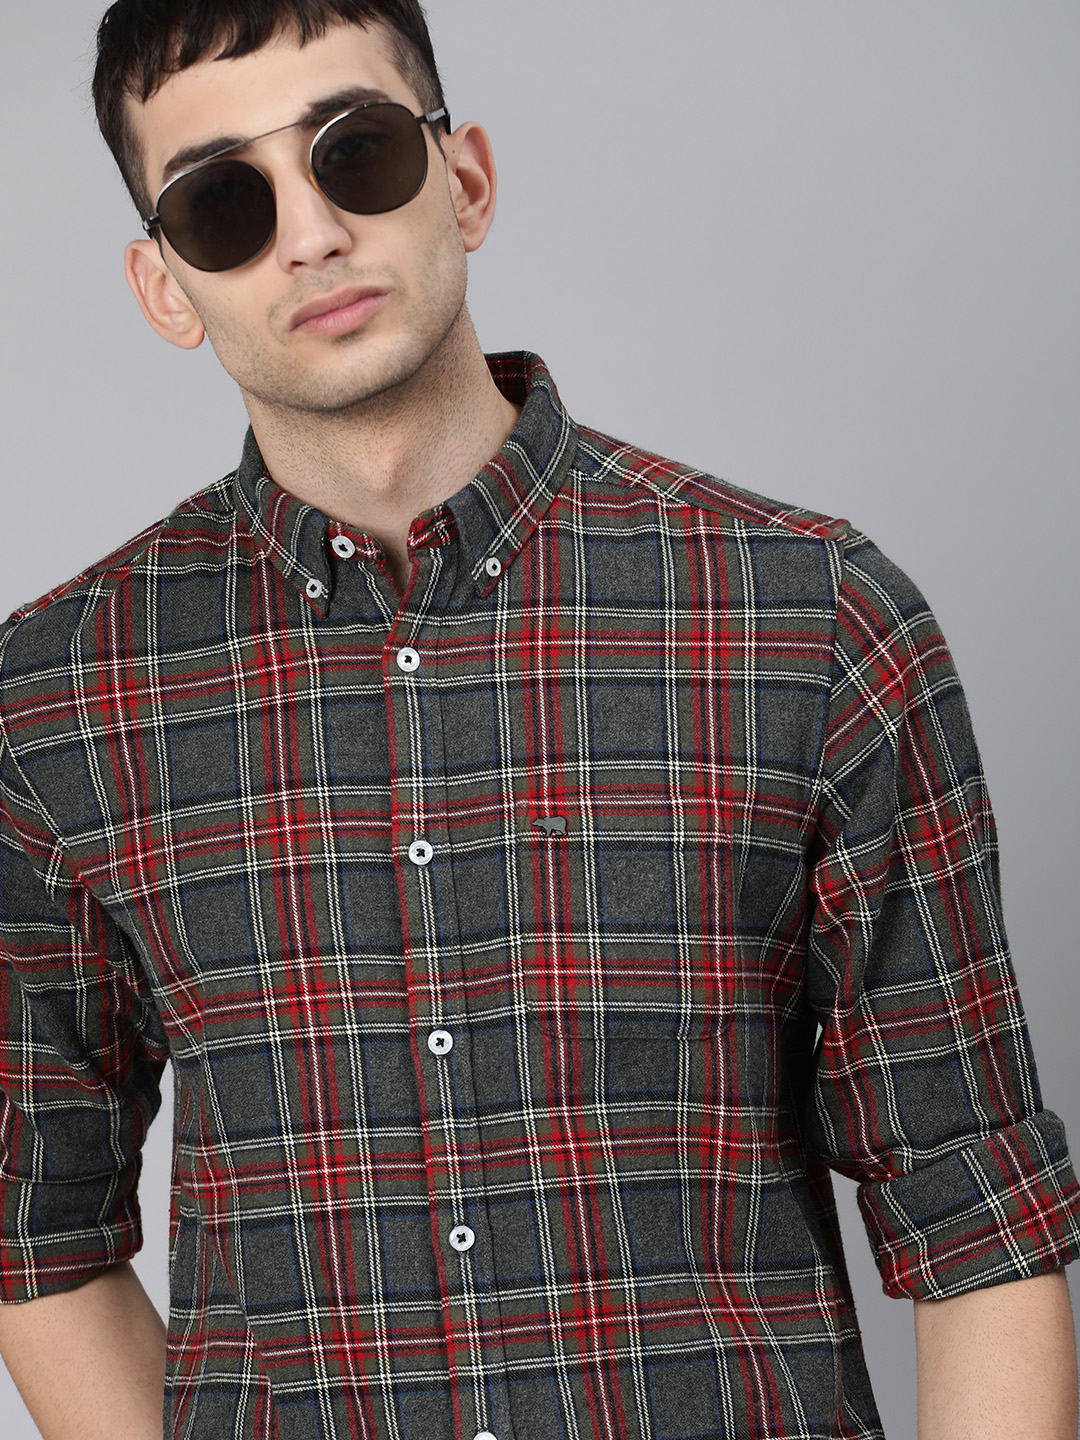 The Bear House | Men's Flannel Button-down Casual Shirt